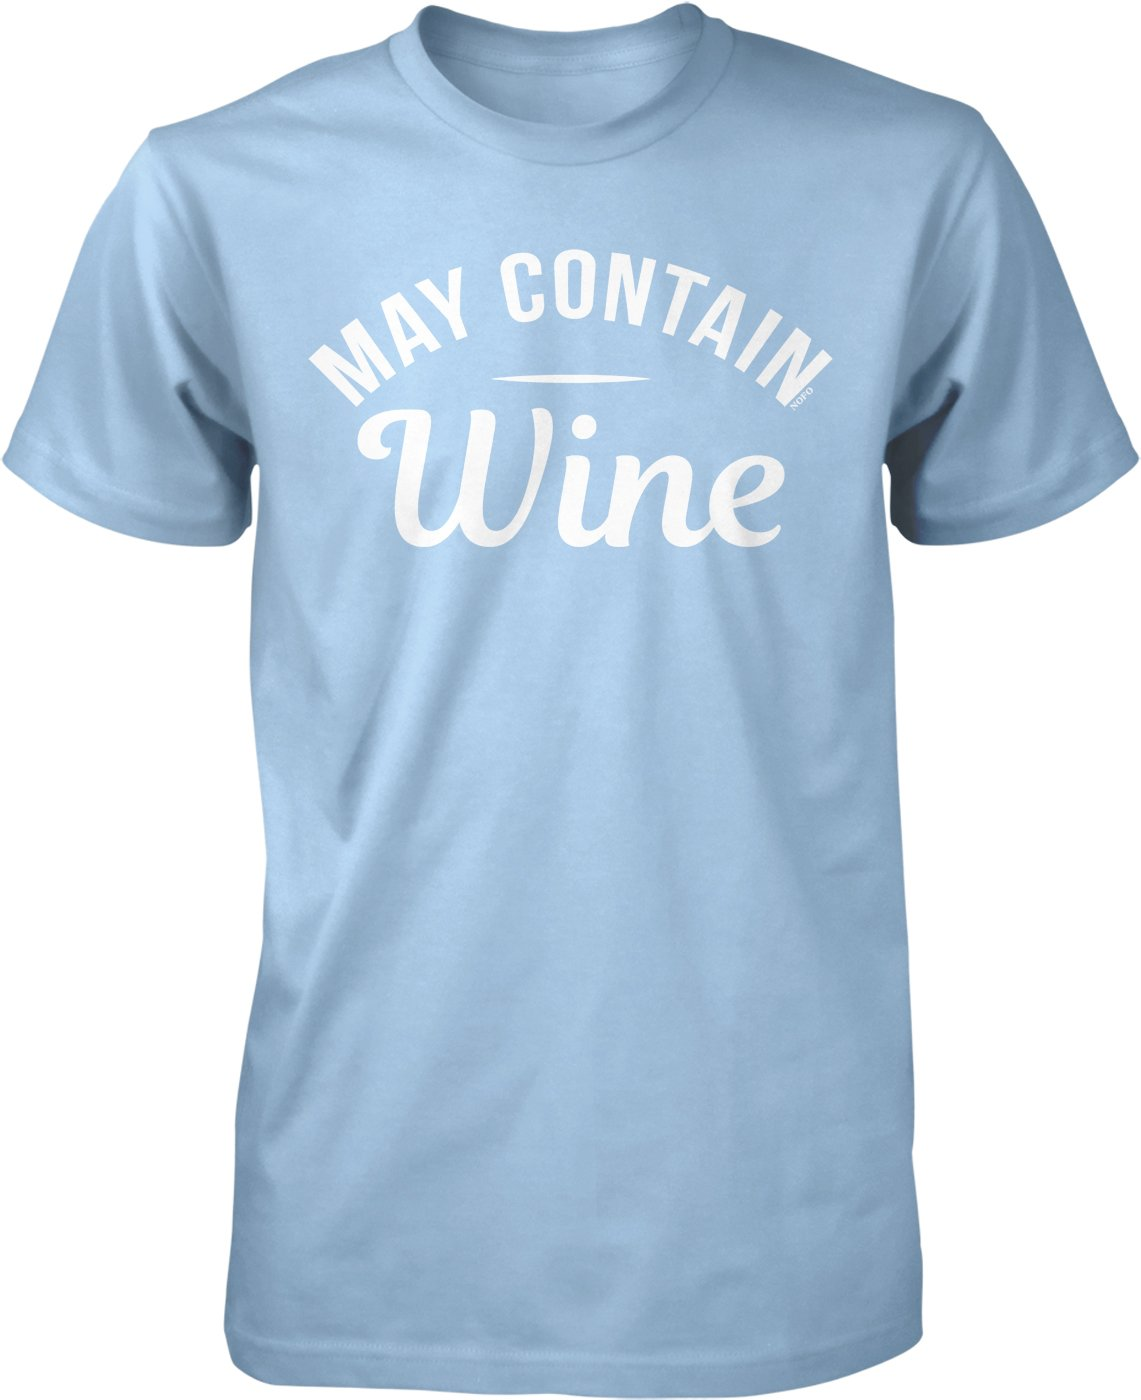 May Contain Wine S Tshirt